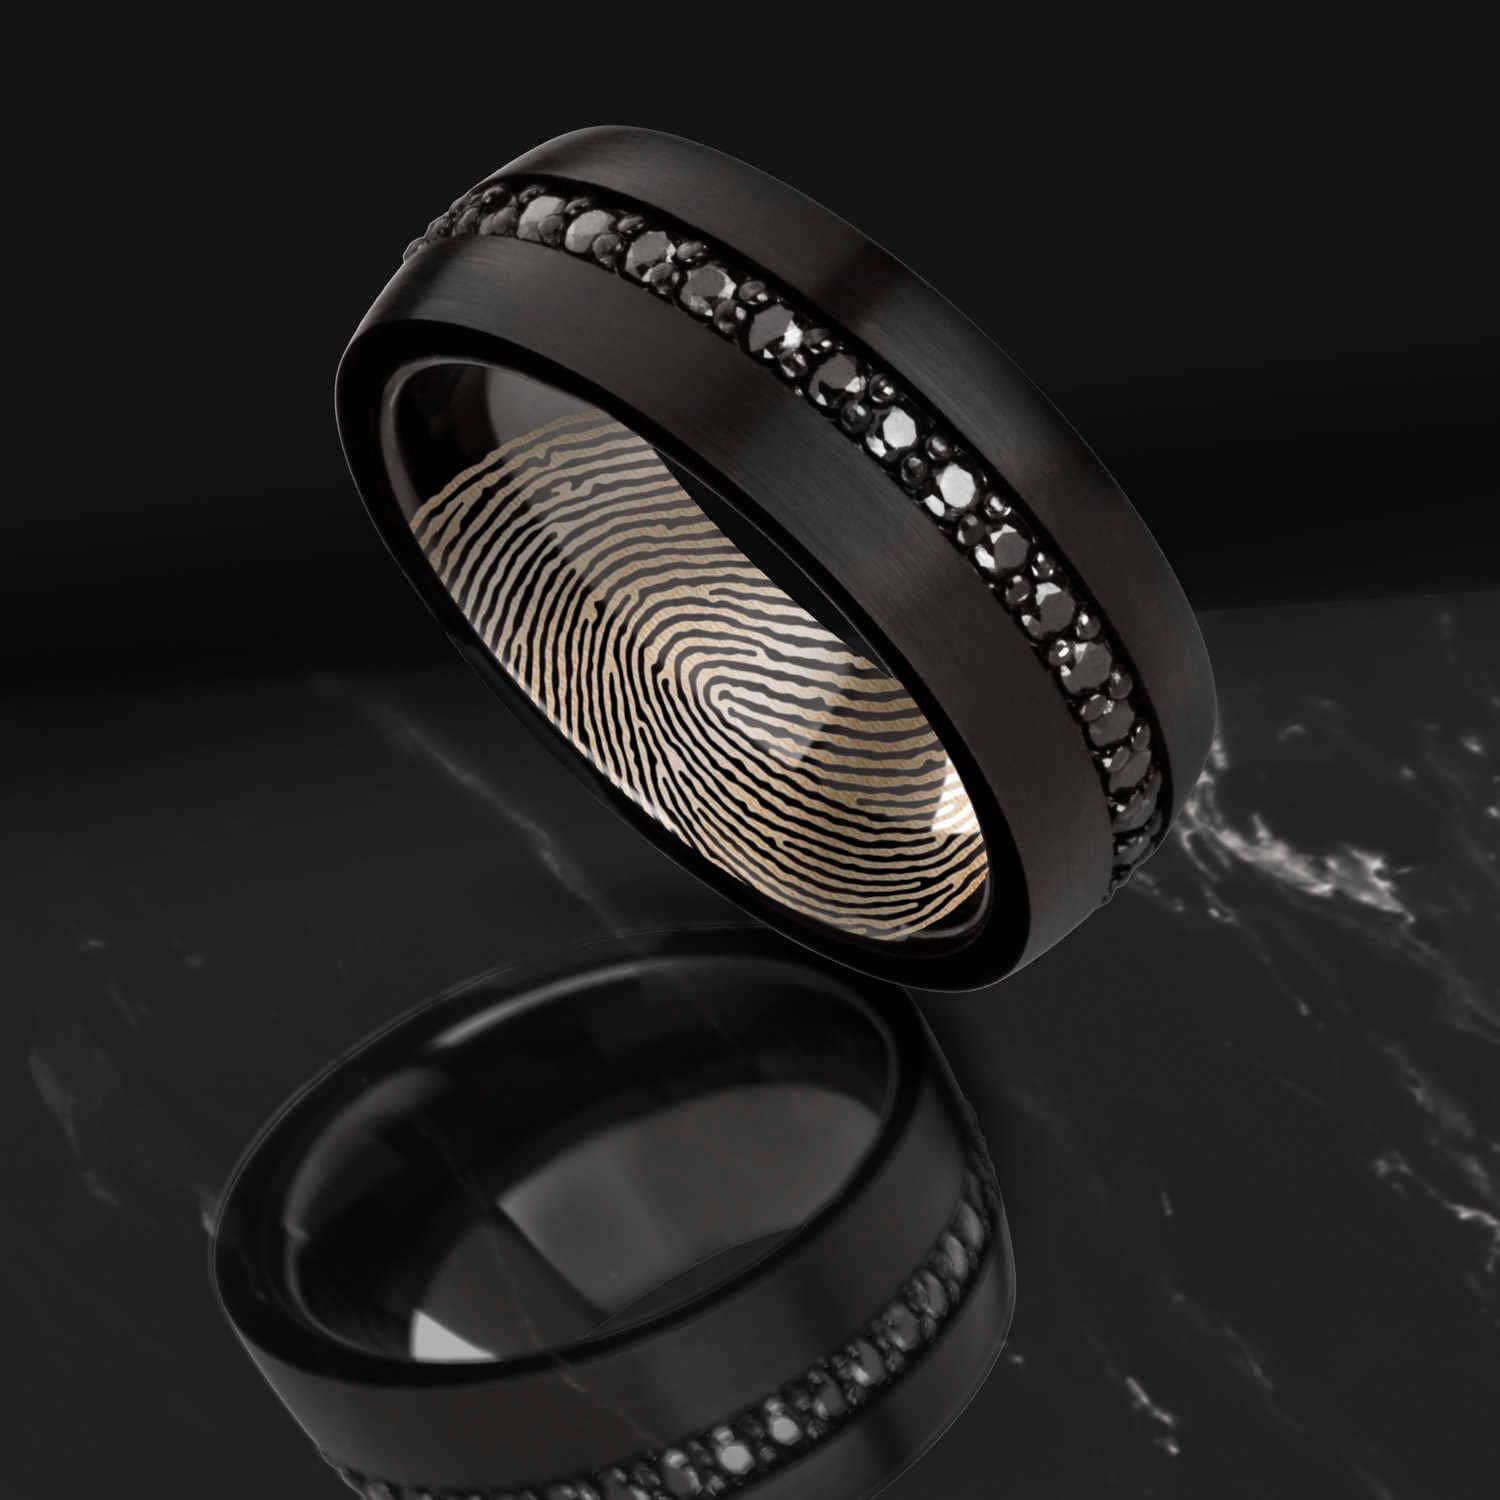 recon pinterest men wedding rings camo s unique ring of images on mens best fingerprint bands silicone